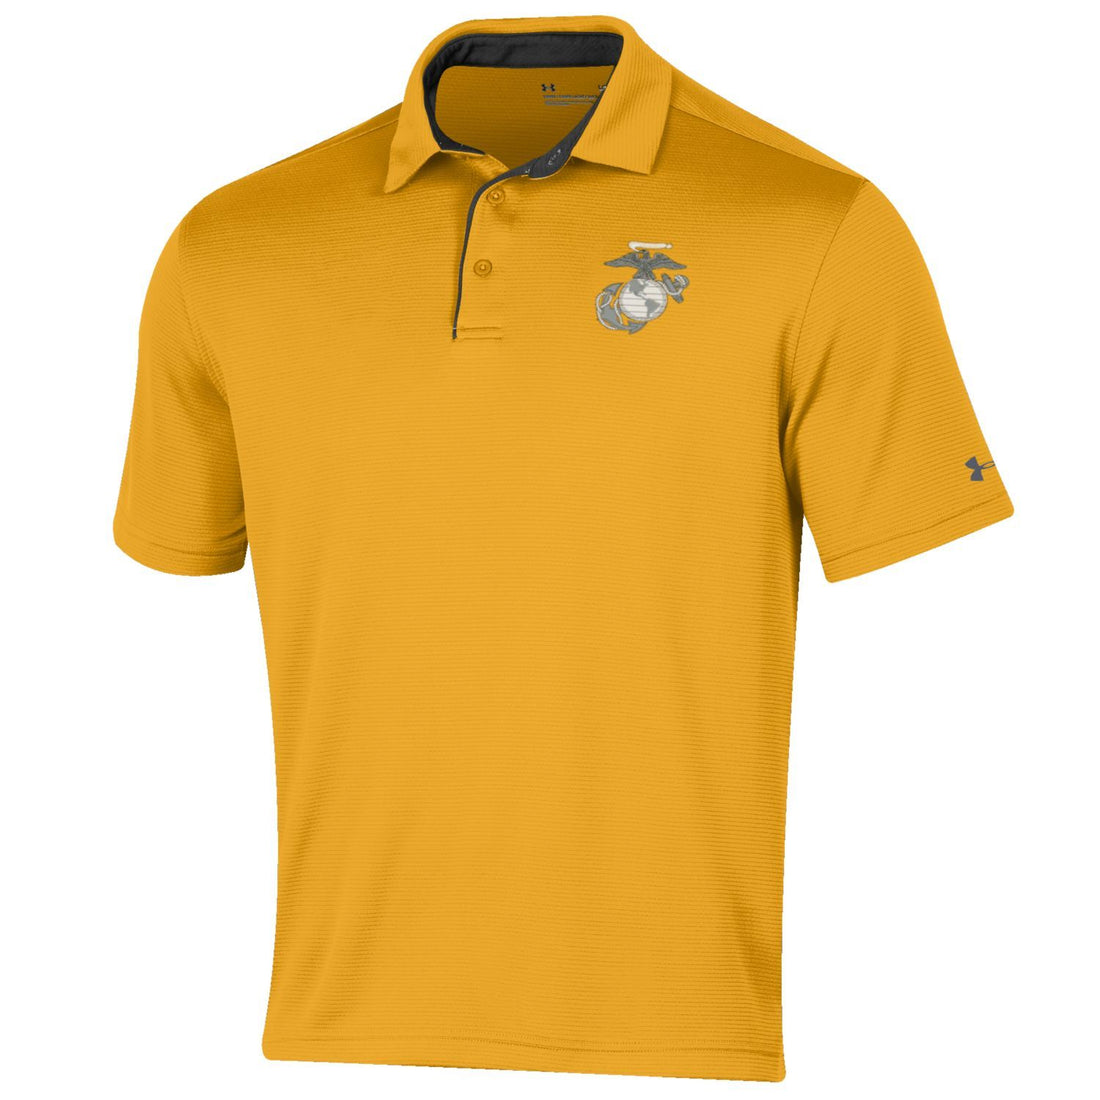 Under Armour Marines Tech Performance Polo Gold - Marine Corps Direct